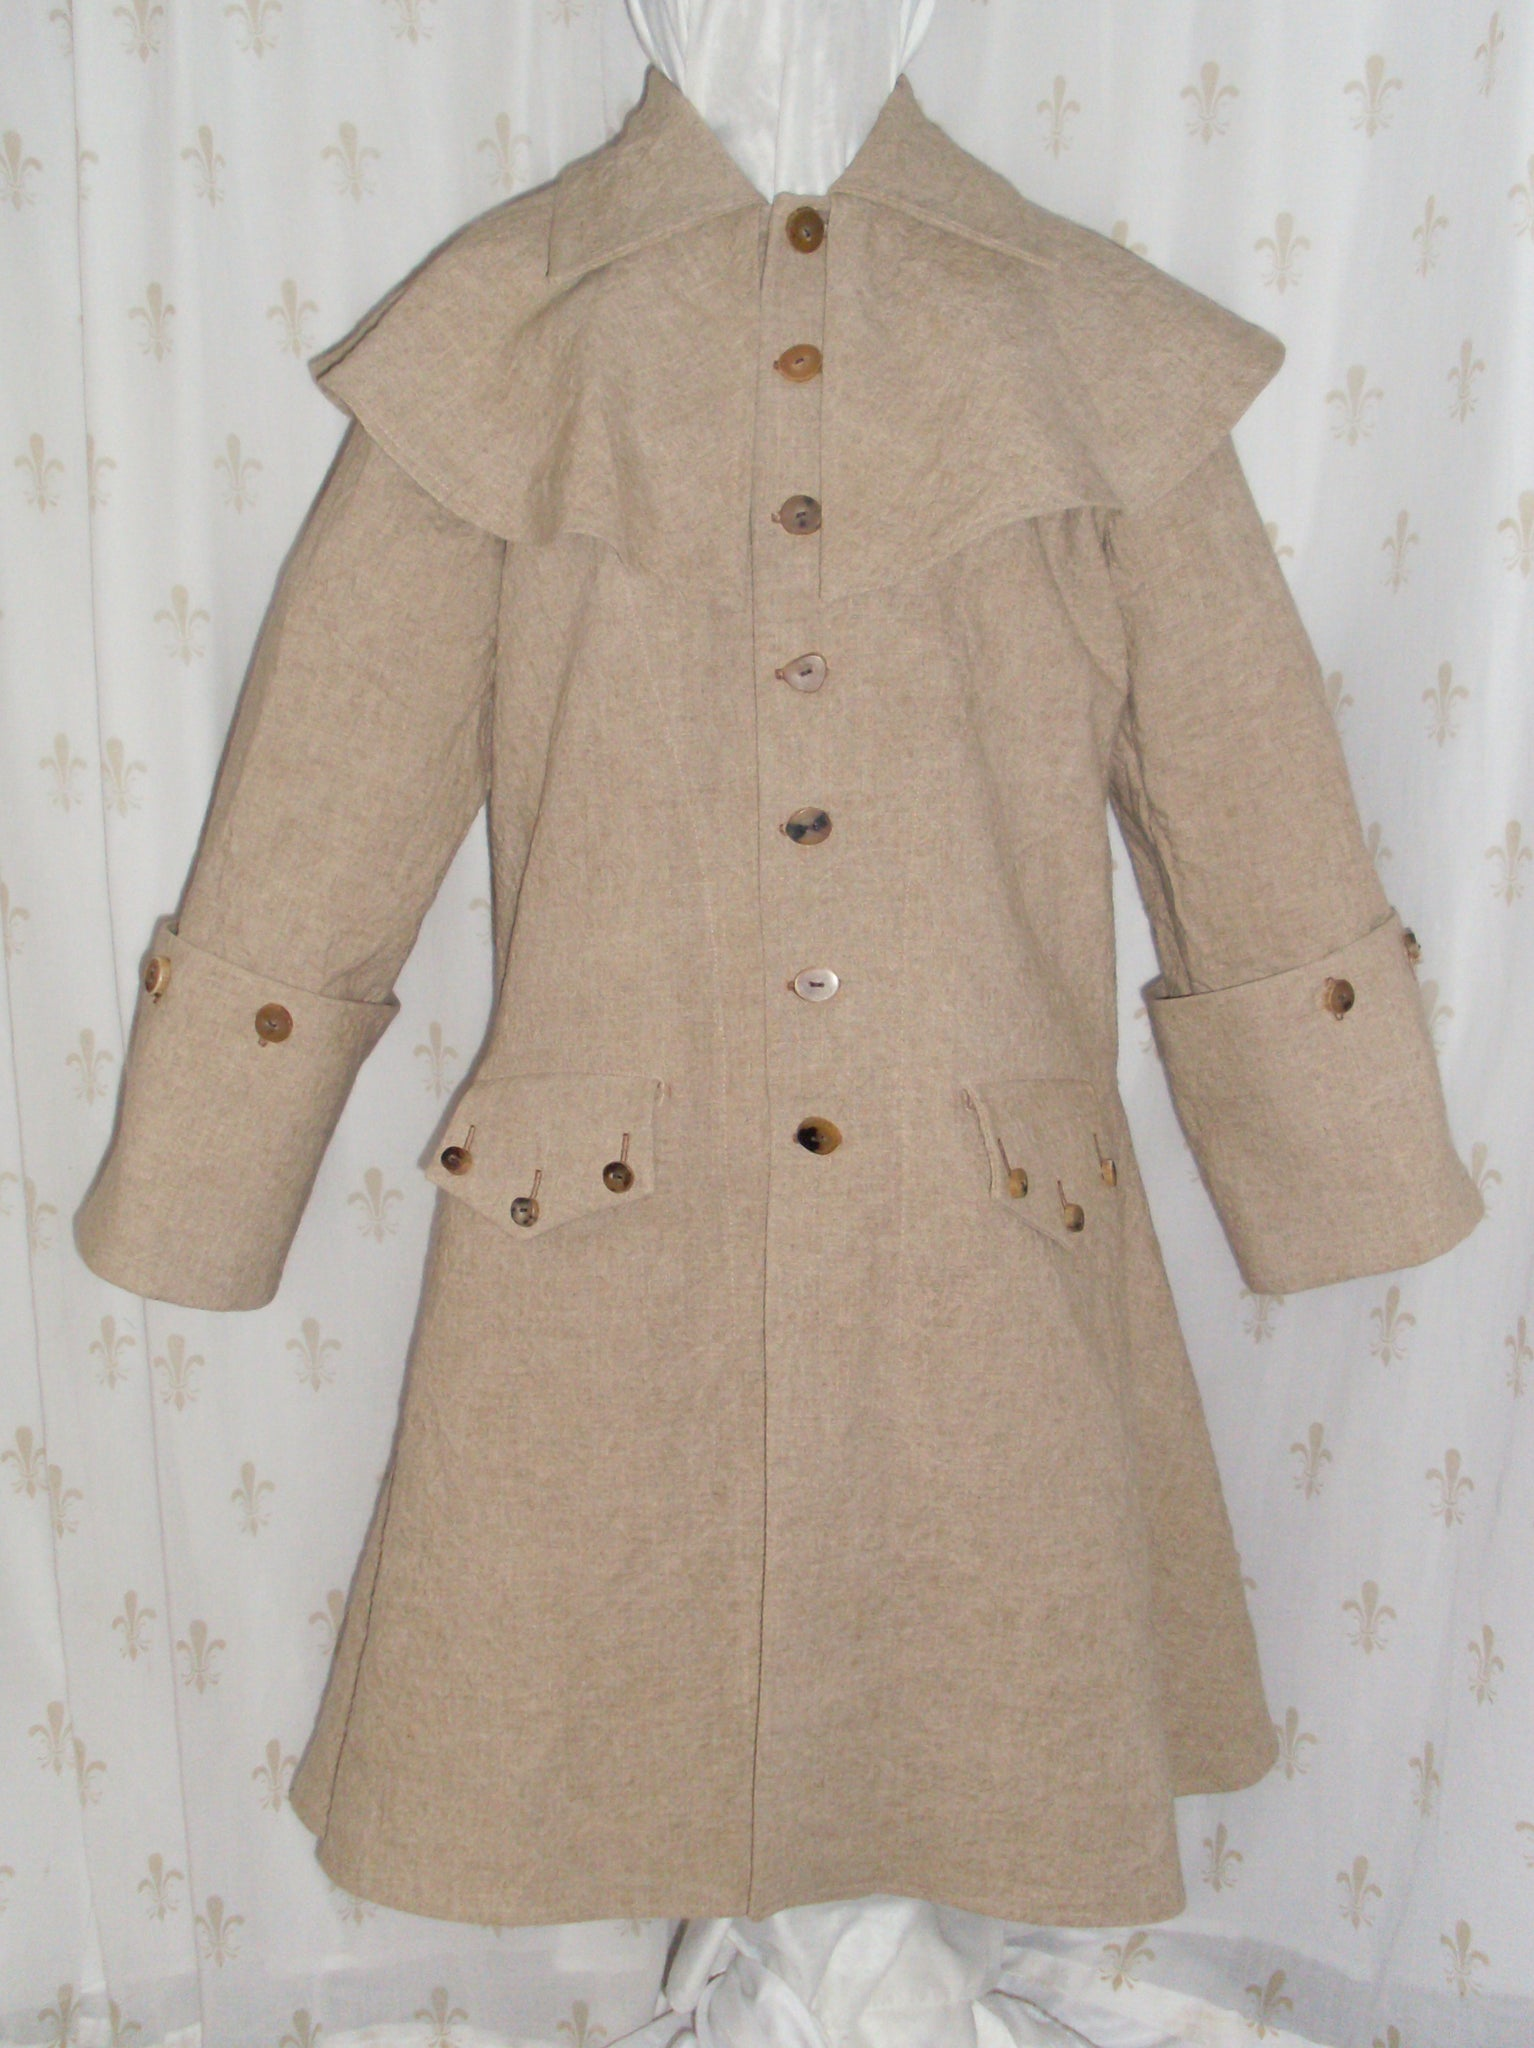 Greatcoat with mantle, linen/rayon blend, re-enactor pirate style, horn buttons, two pockets: front view